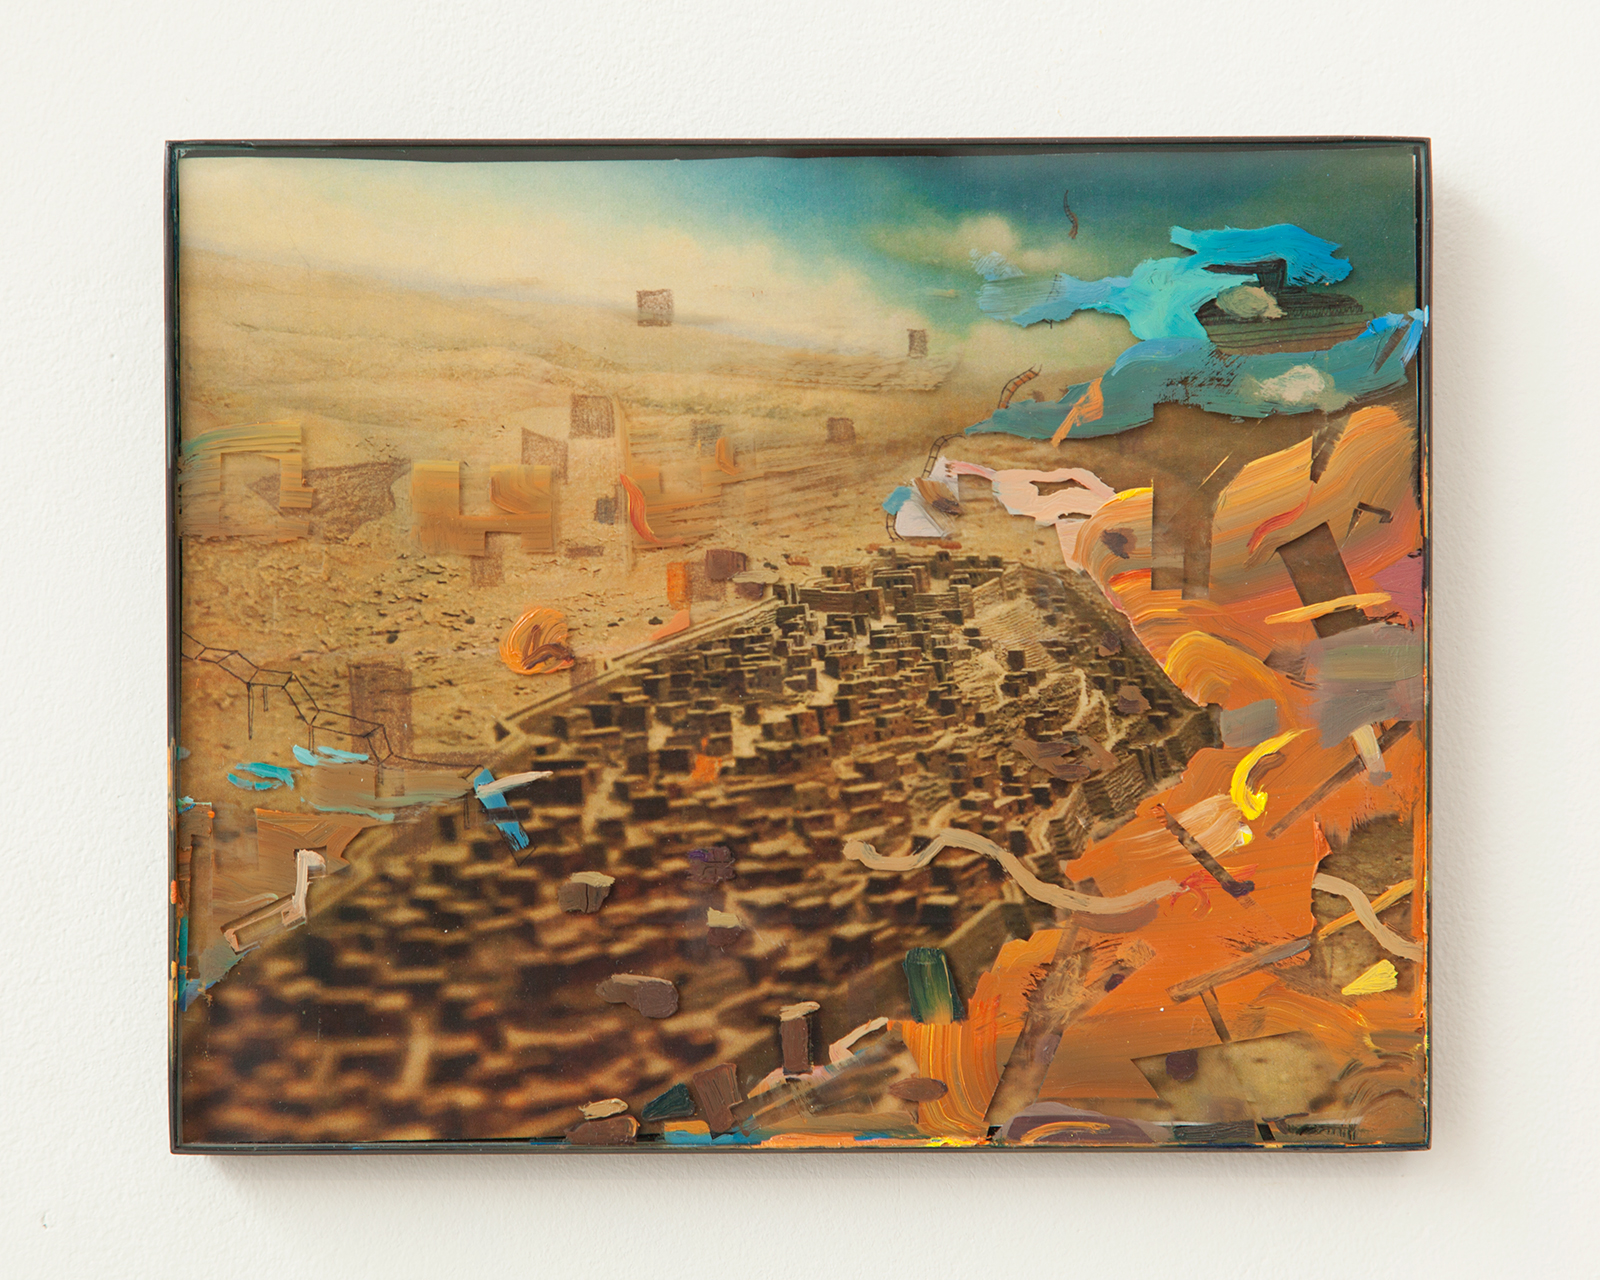 """2014, photograph of """"City of David"""" diorama, glass, frame, oil, pencil, ink, 8 x 10 inches"""